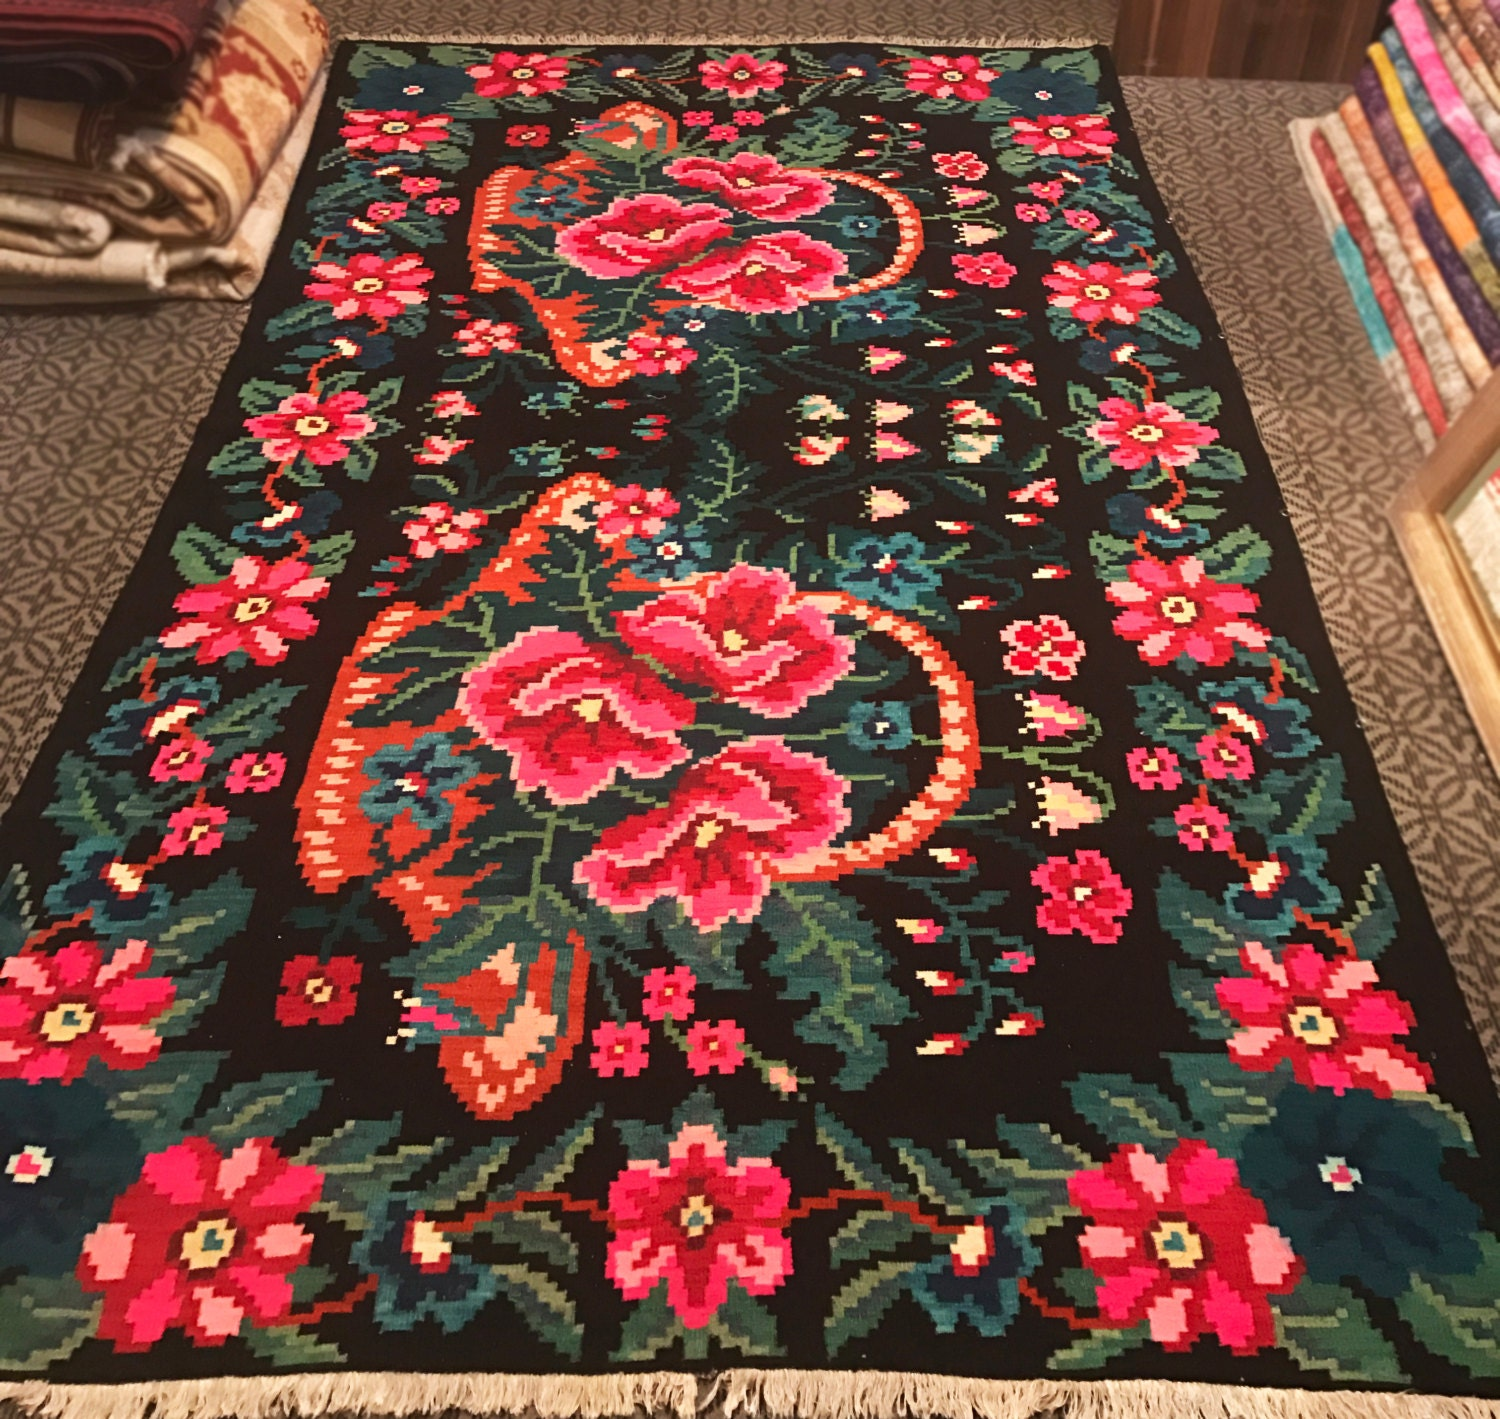 Handmade KARABAG Kilim Rug Decorative Area Kilim Carpet